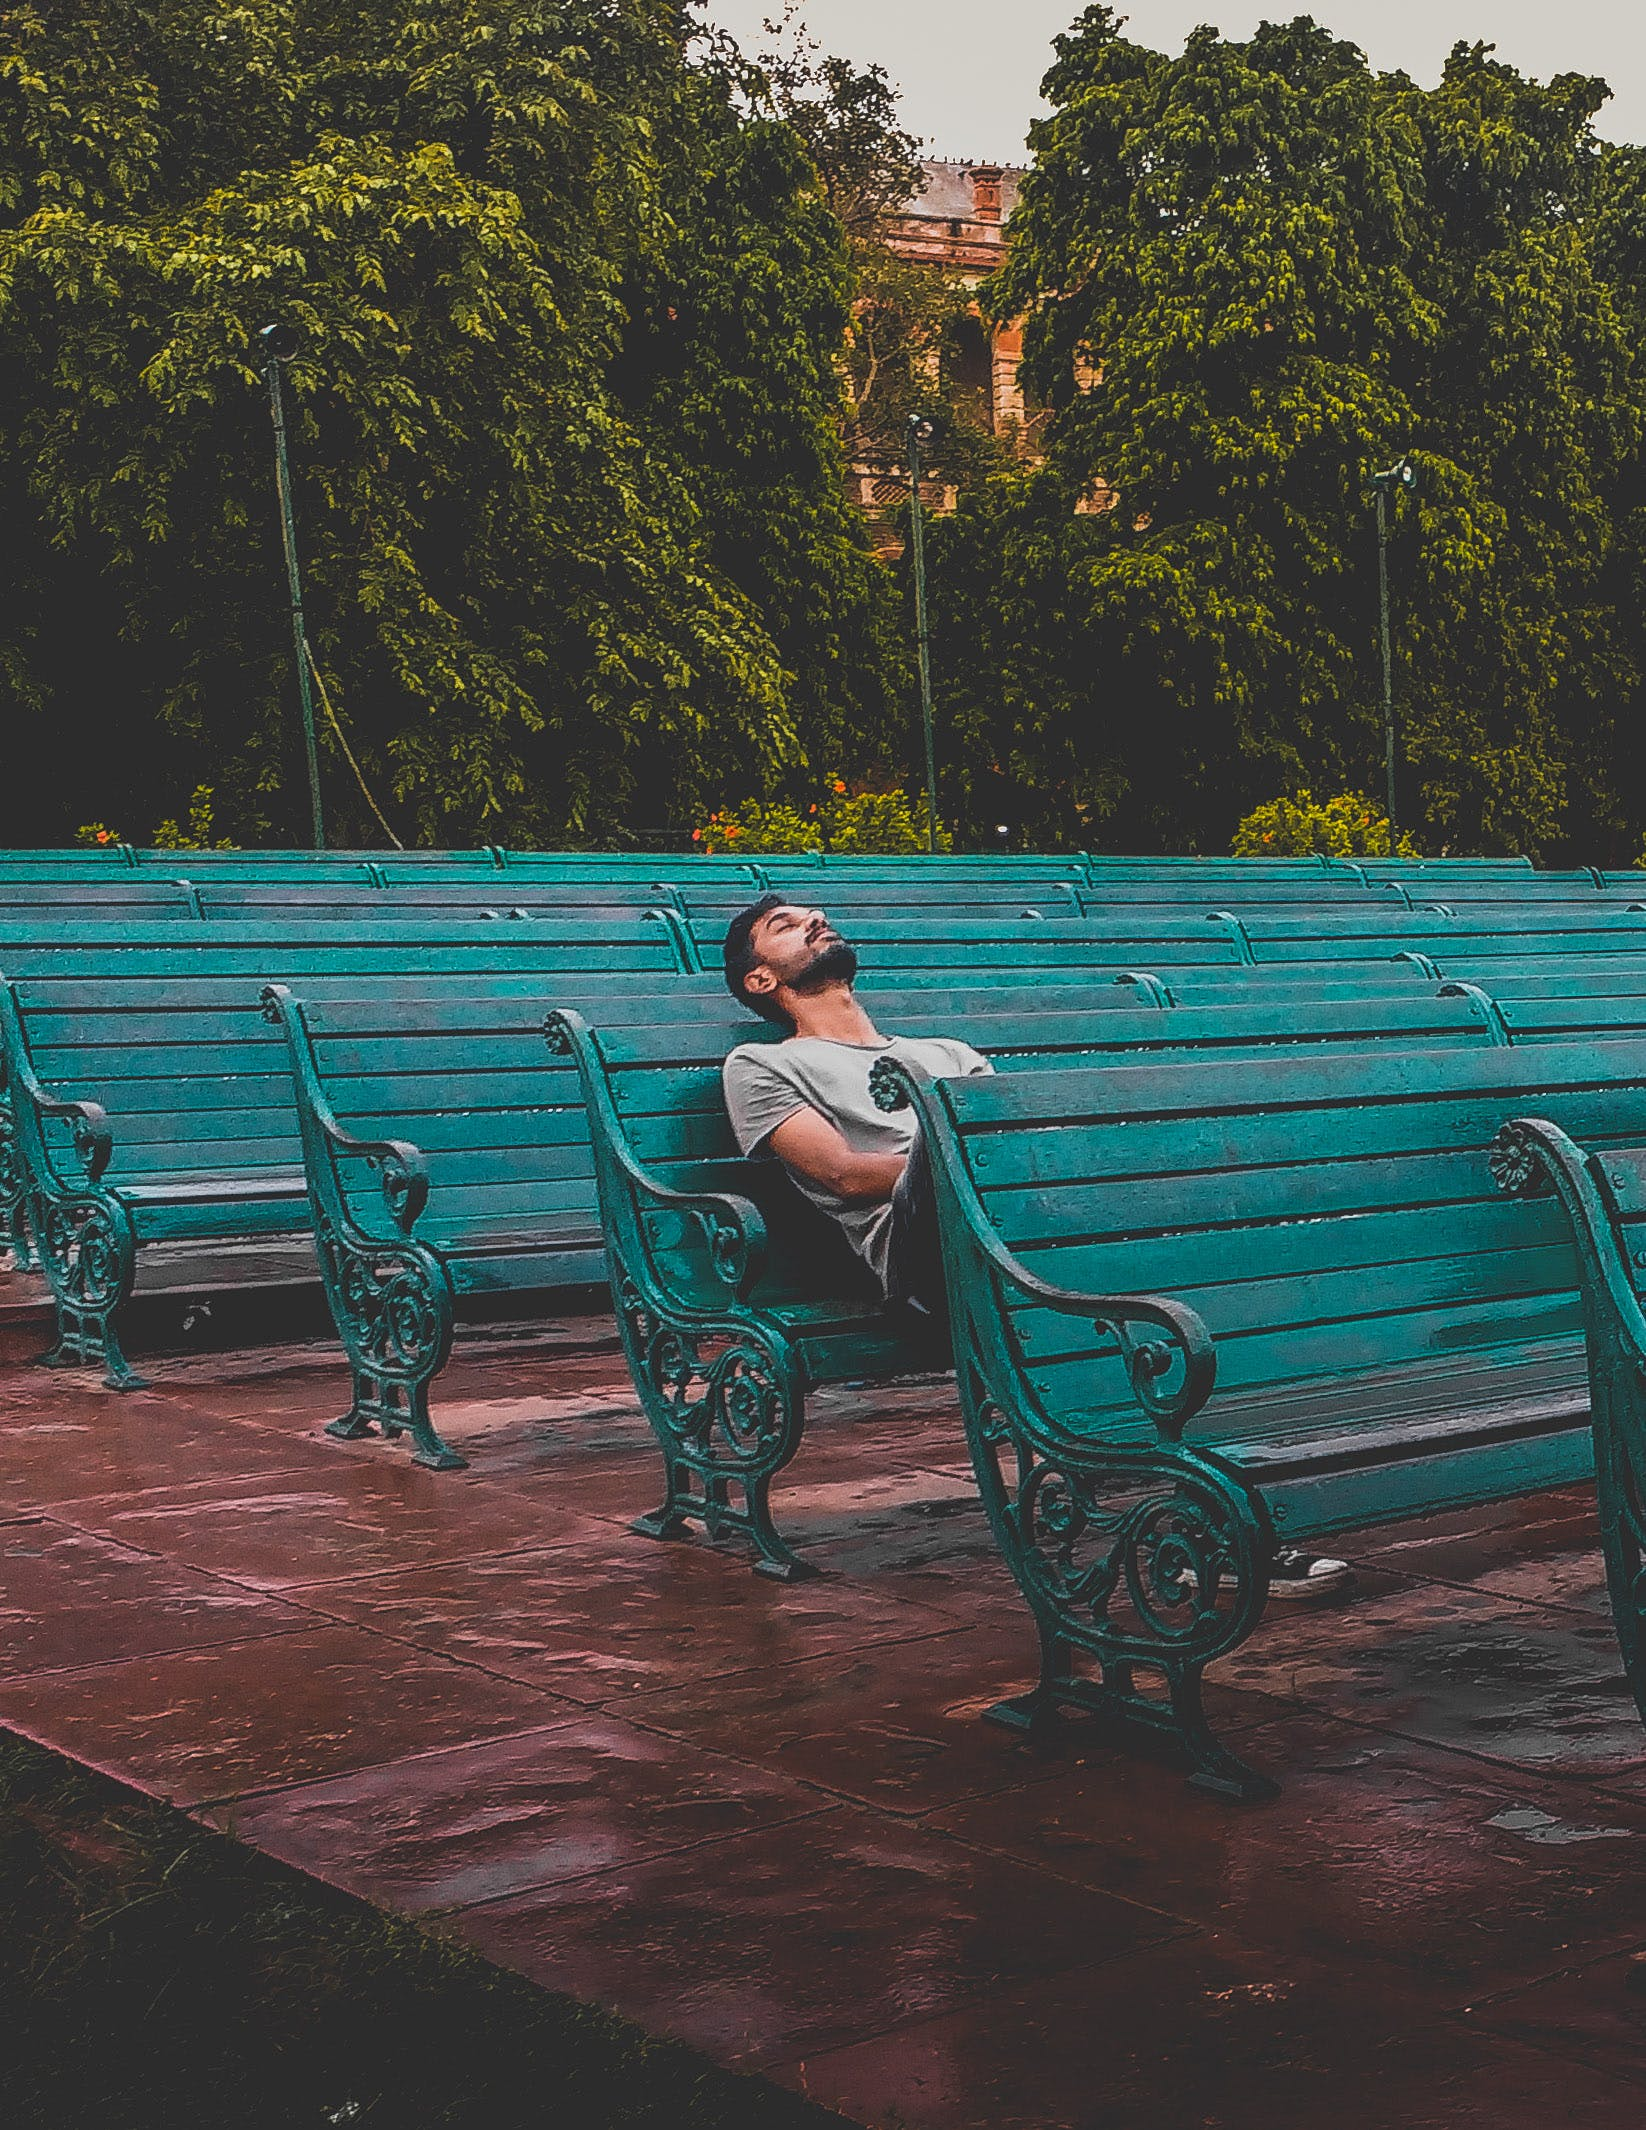 Free stock photo of bench, landscape, man, person